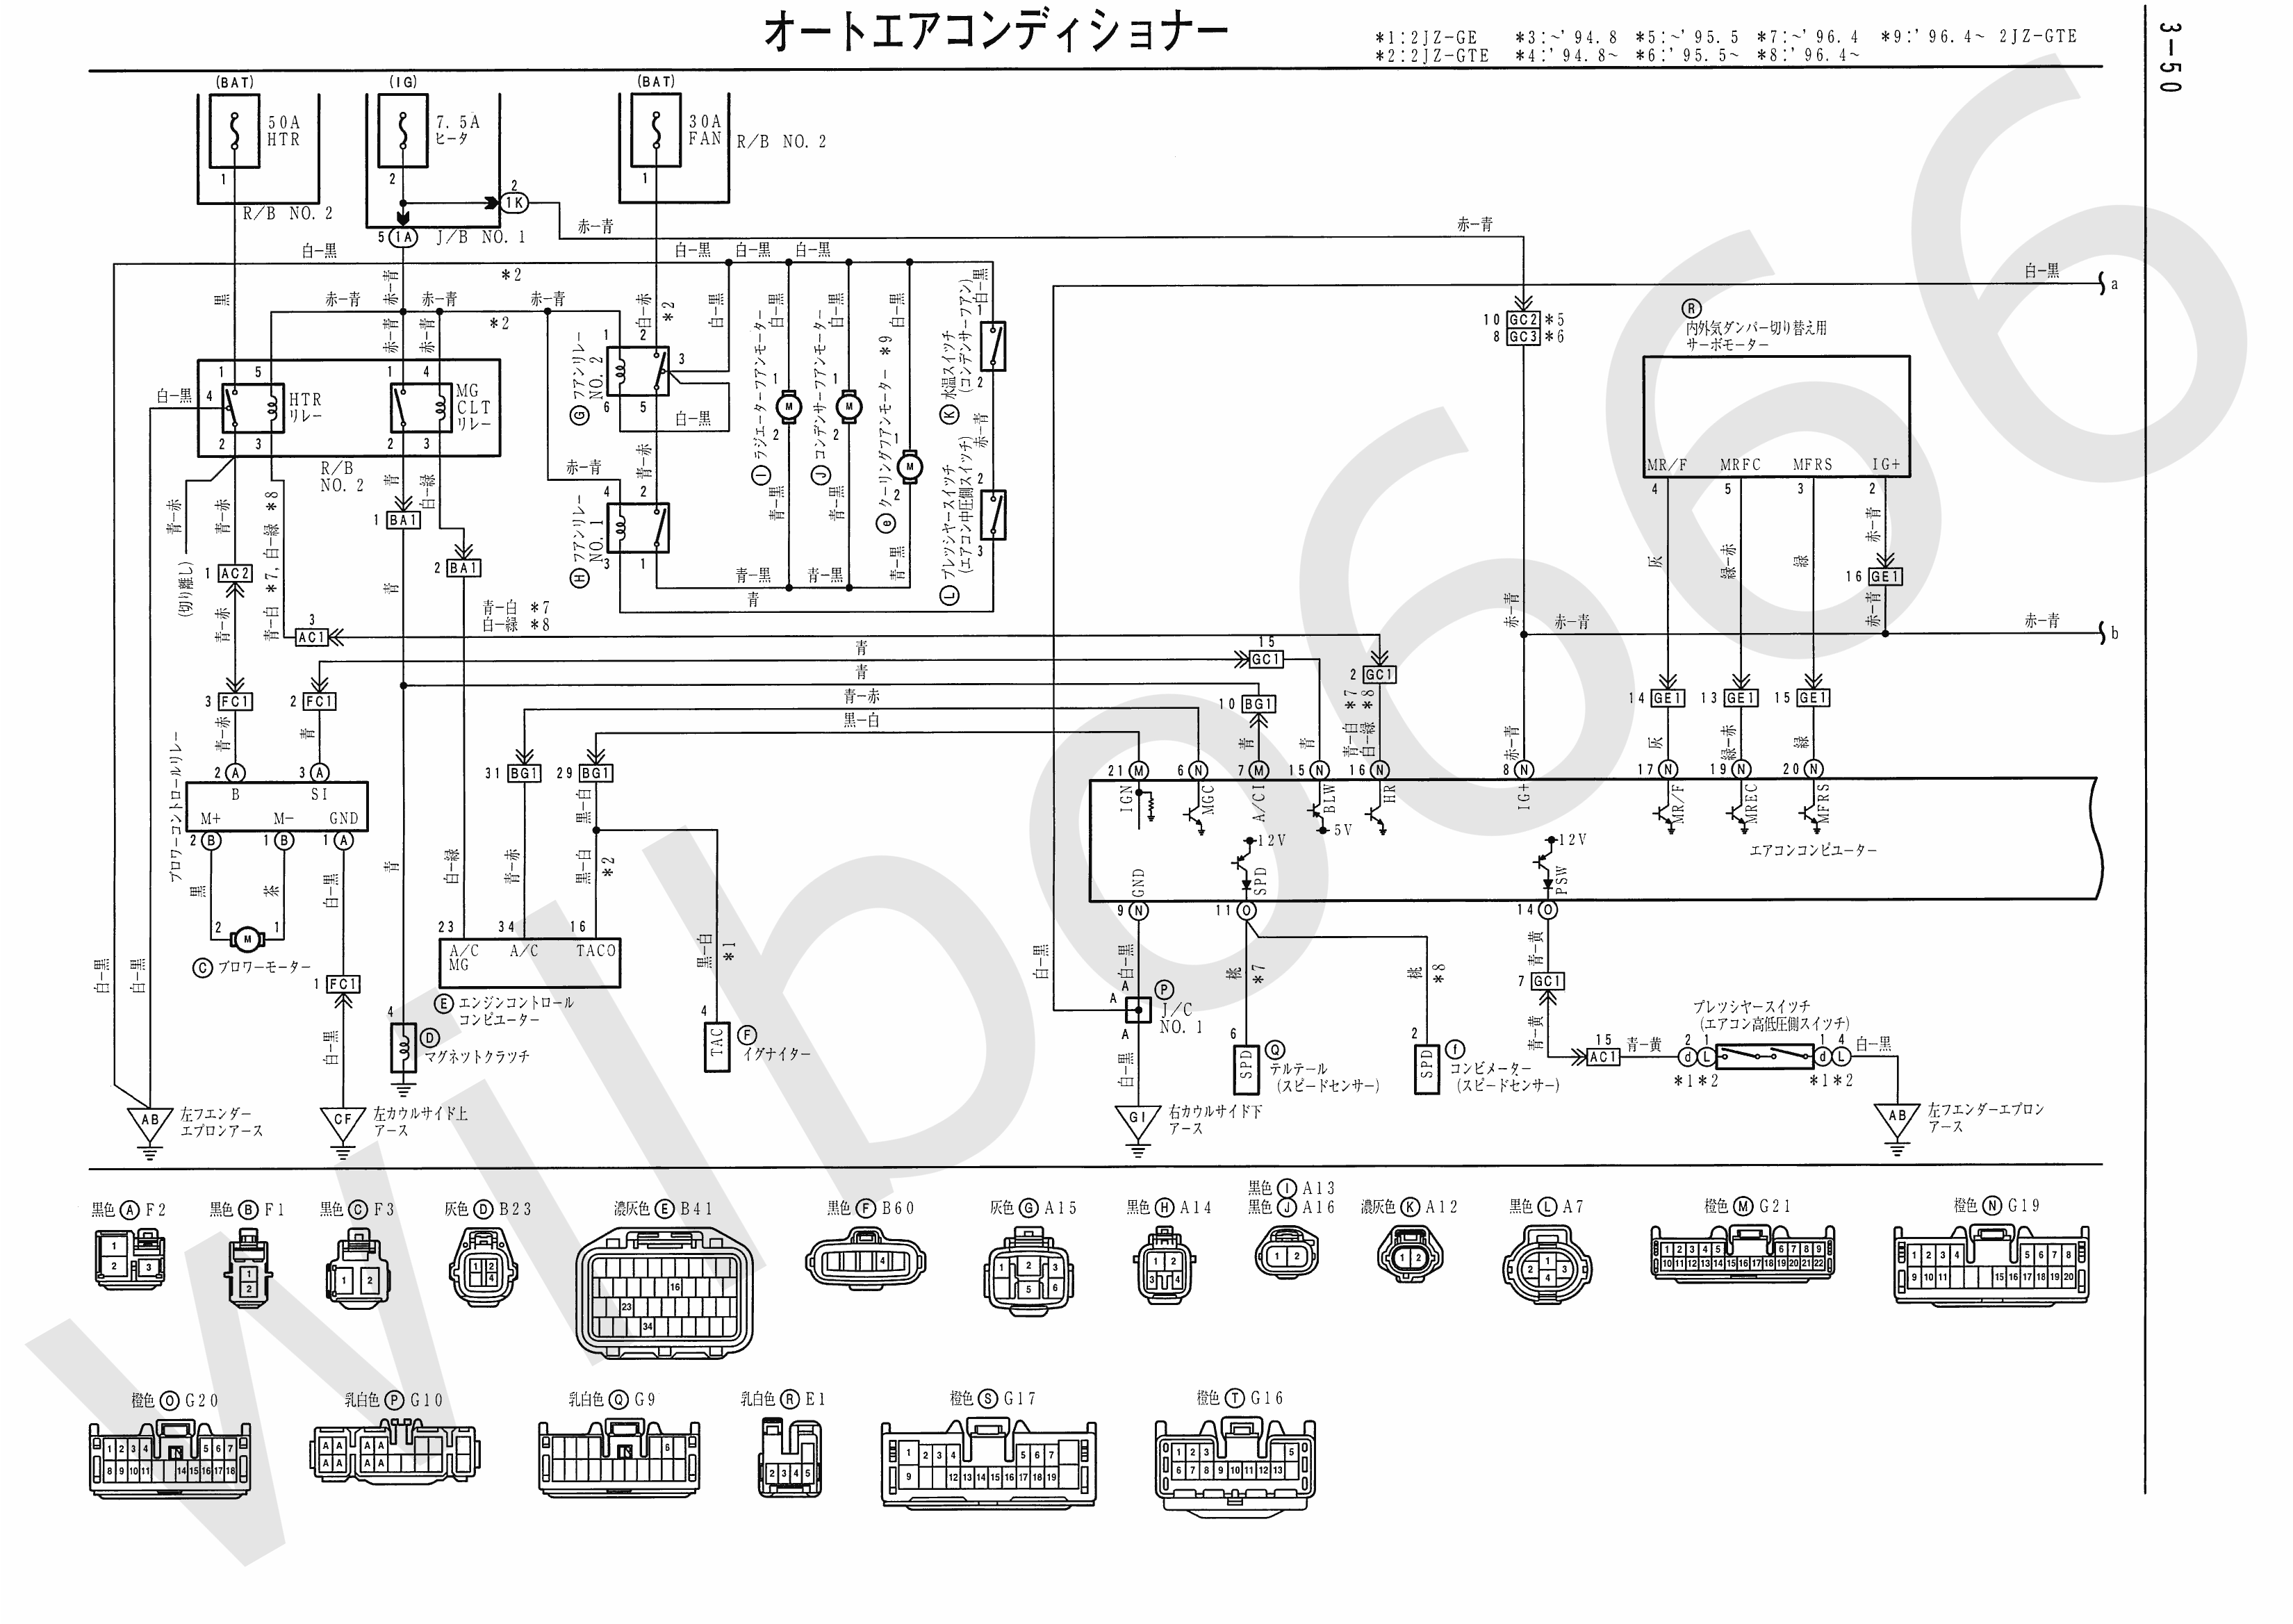 JZA80 Electrical Wiring Diagram 6742505 3 50 wilbo666 2jz gte vvti jza80 supra engine wiring 2jzgte wiring diagram at mifinder.co